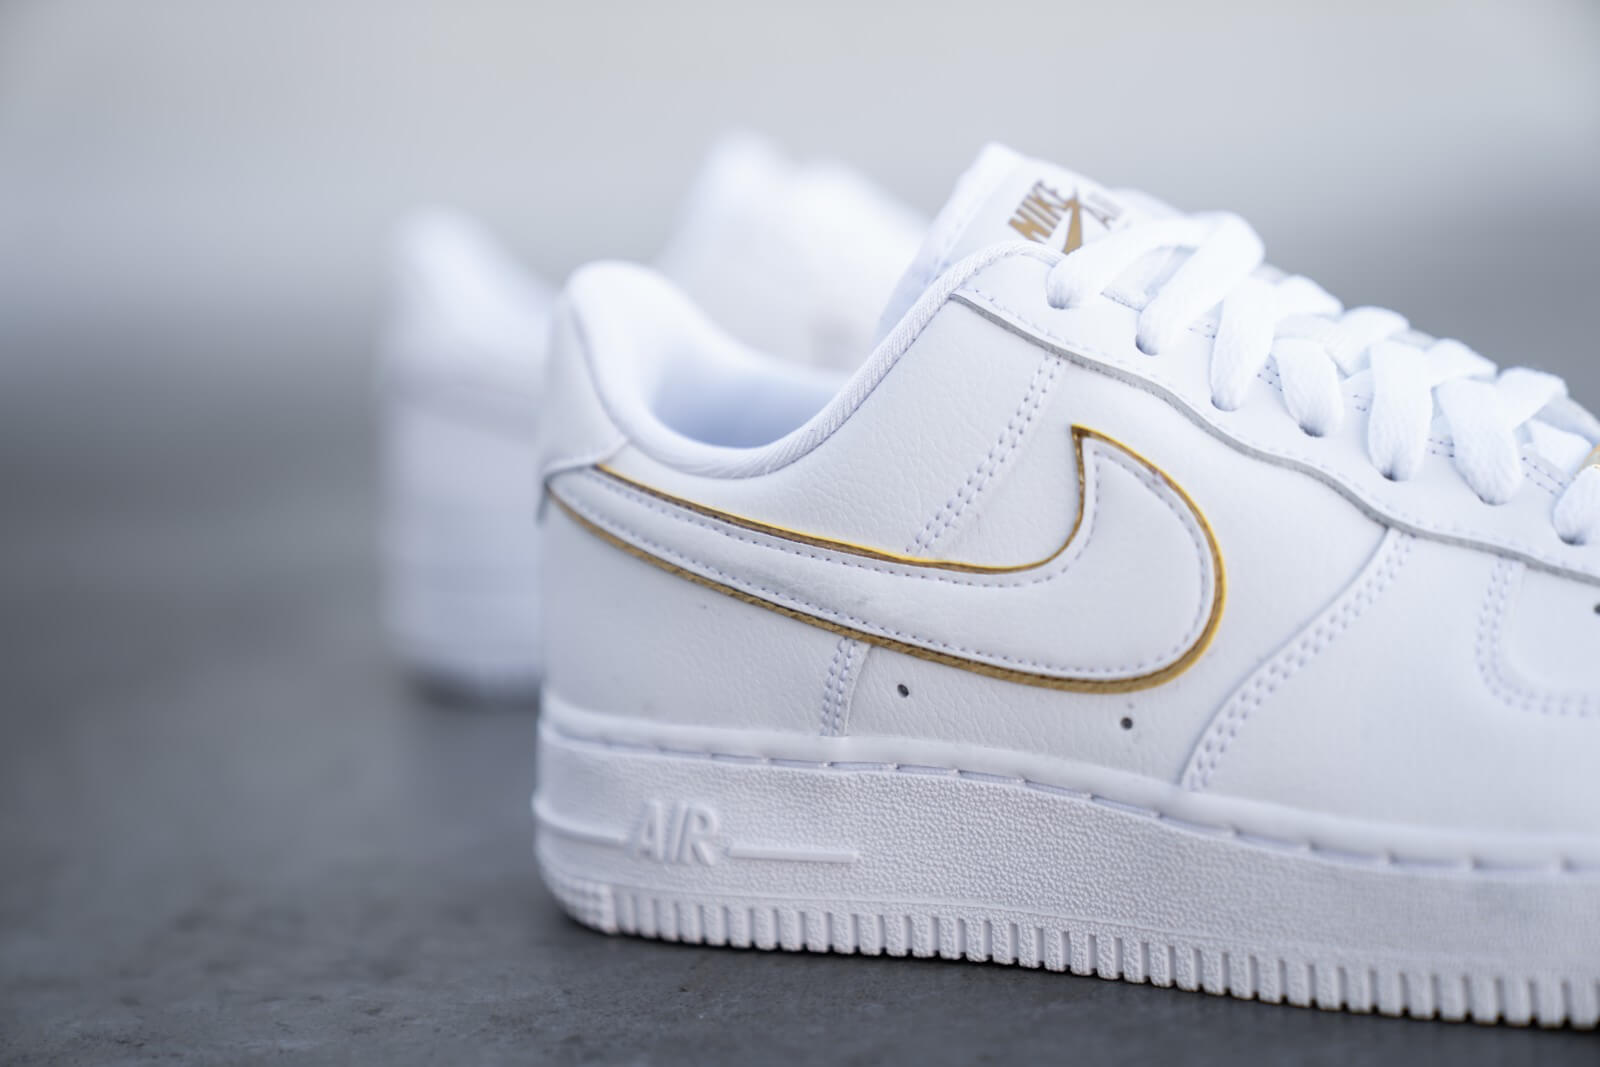 Seguir India reposo  Nike Women's Air Force 1 '07 ESS White/Metallic Gold - AO2132-102